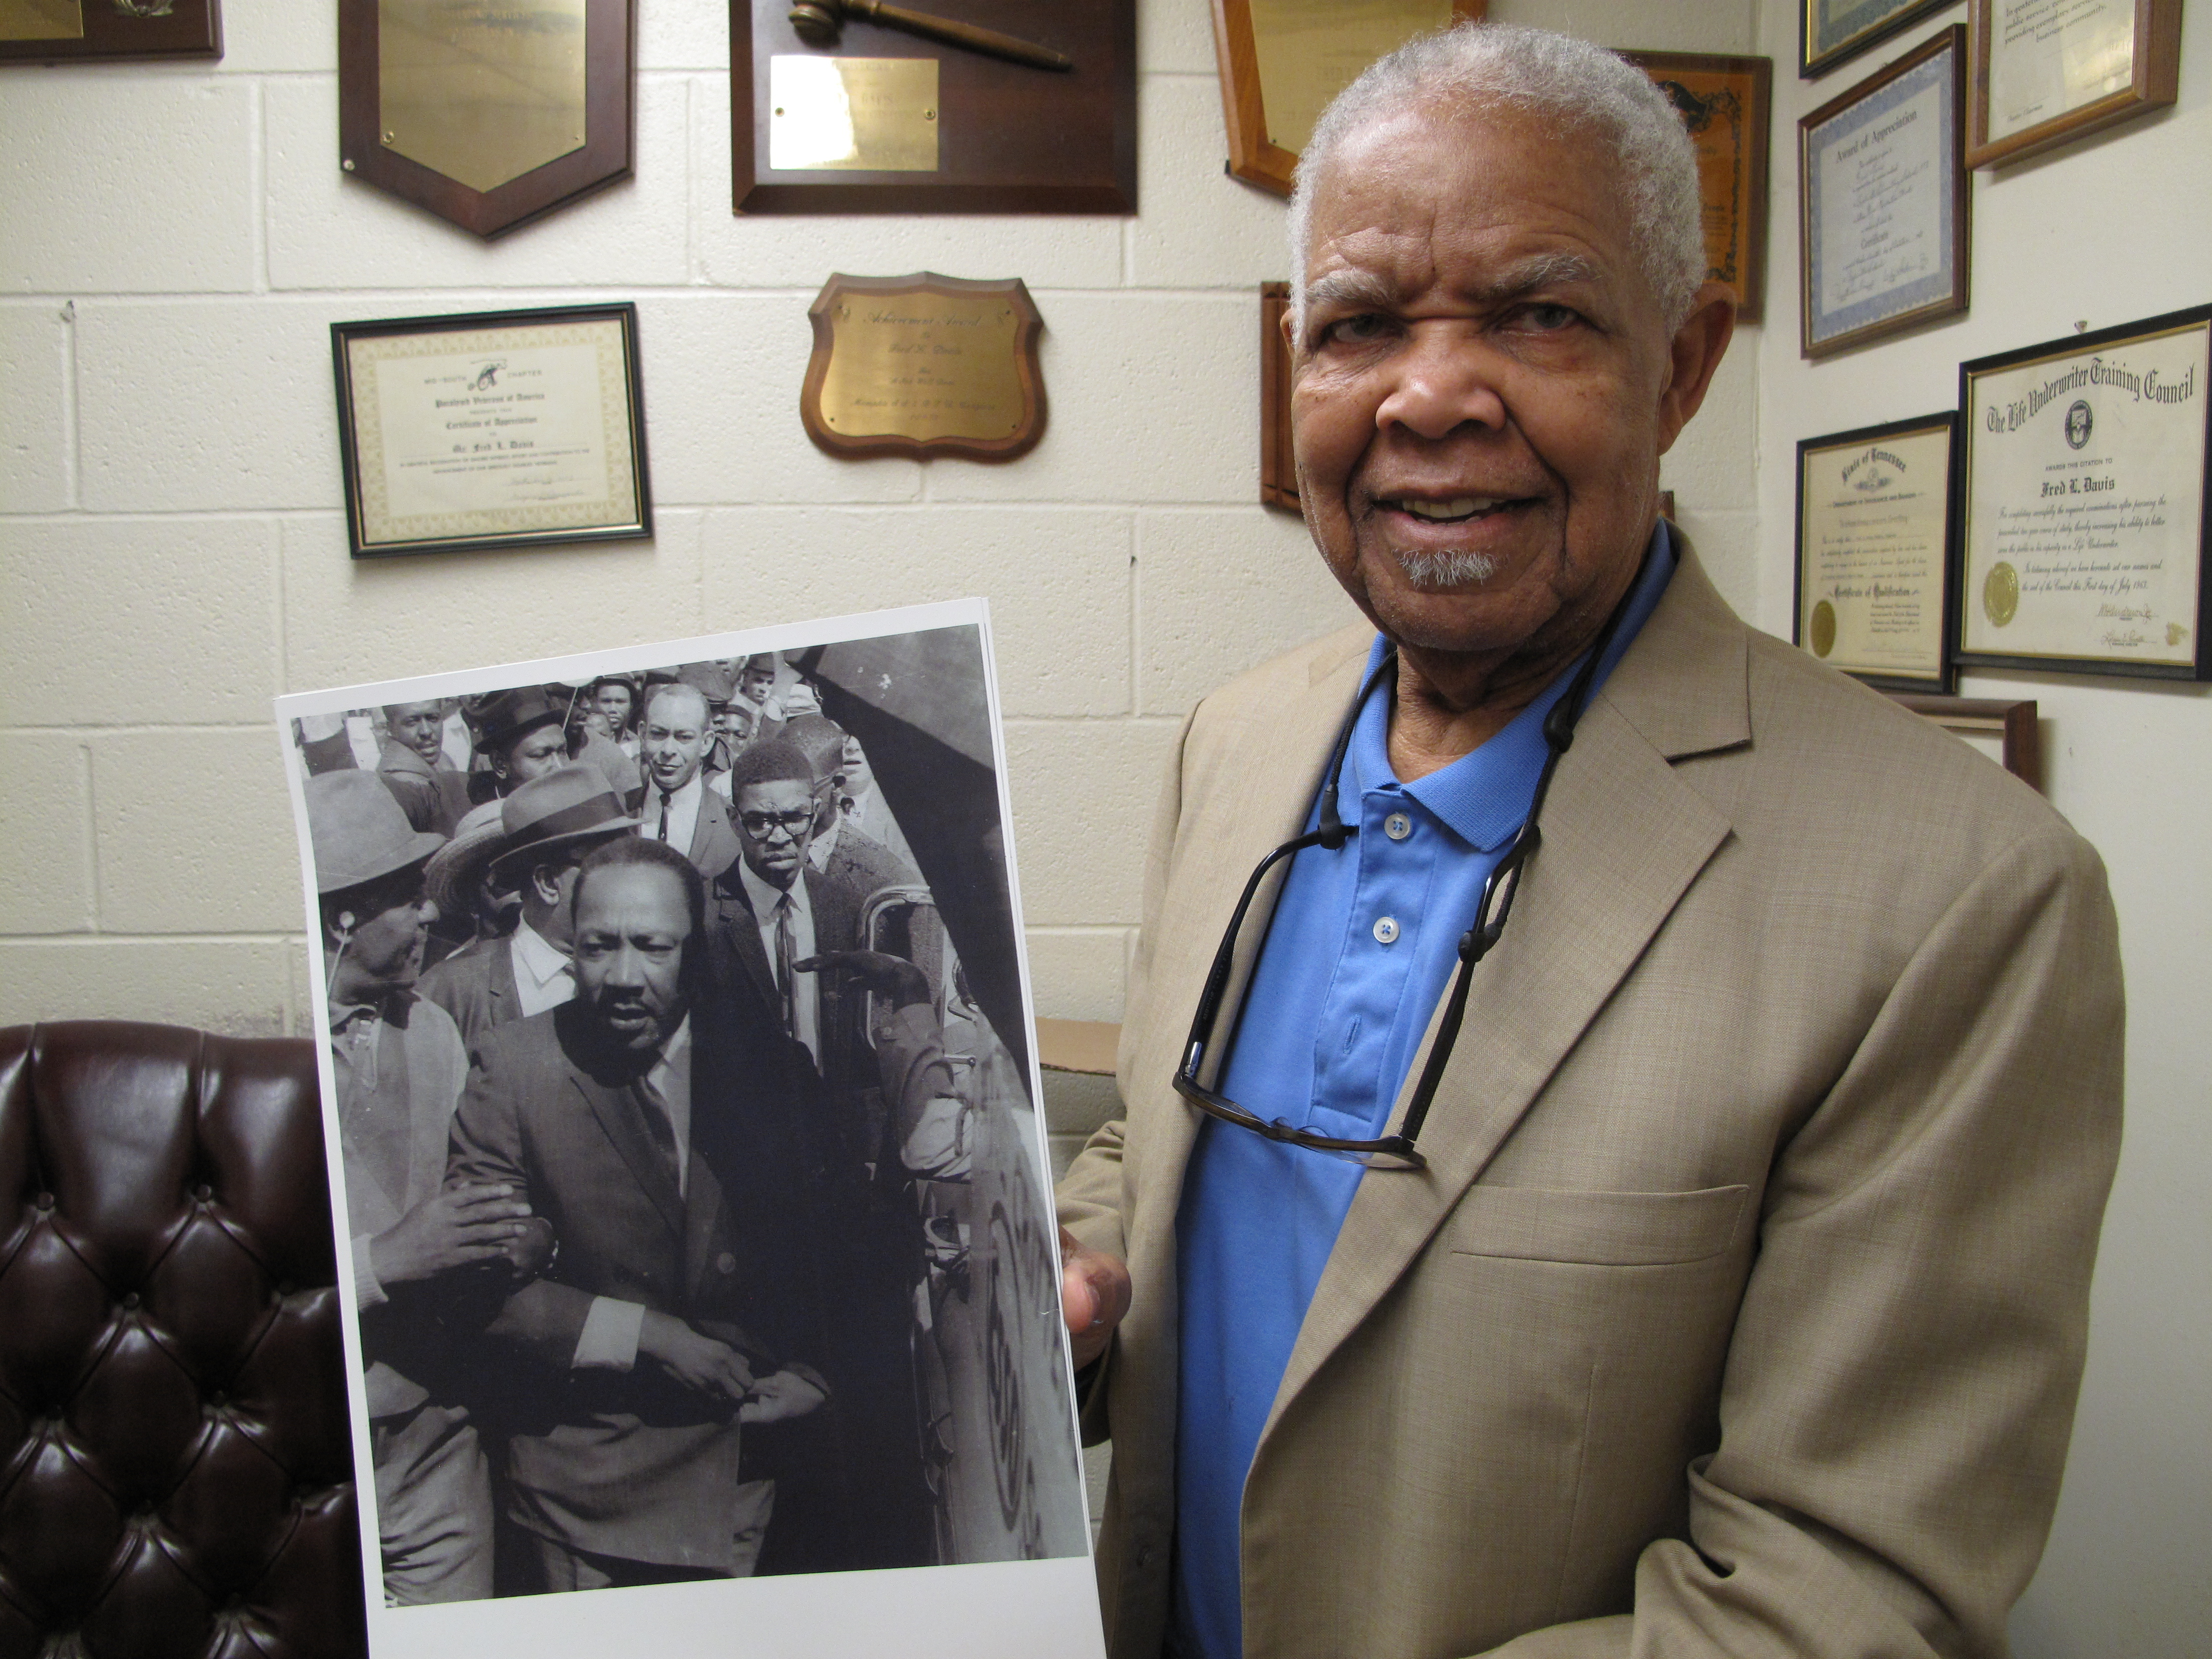 Fred Davis, a former Memphis city councilmember, holds a photograph taken on March 28, showing him standing near King with a crowd following behind.